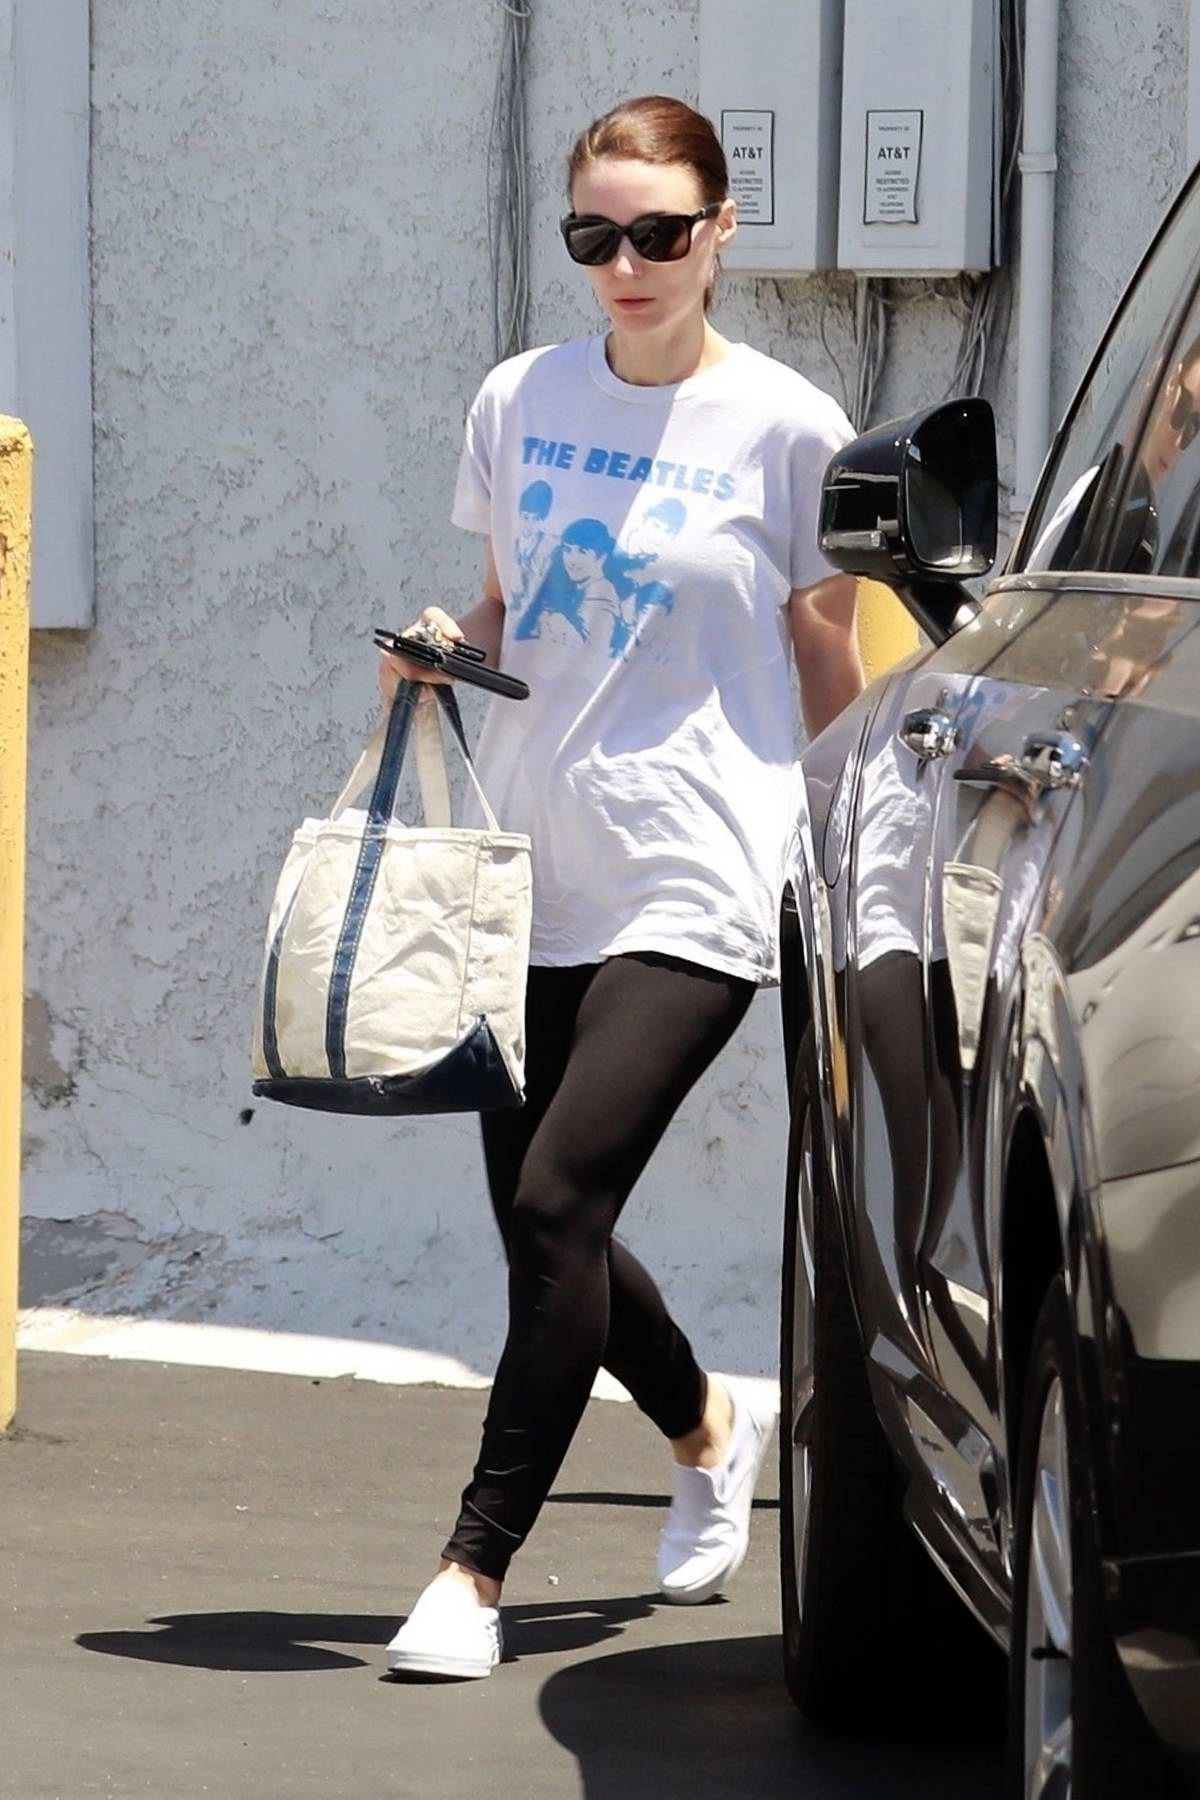 Rooney Mara keeps it simple with a white tee and black leggings while out running errands in Los Angeles